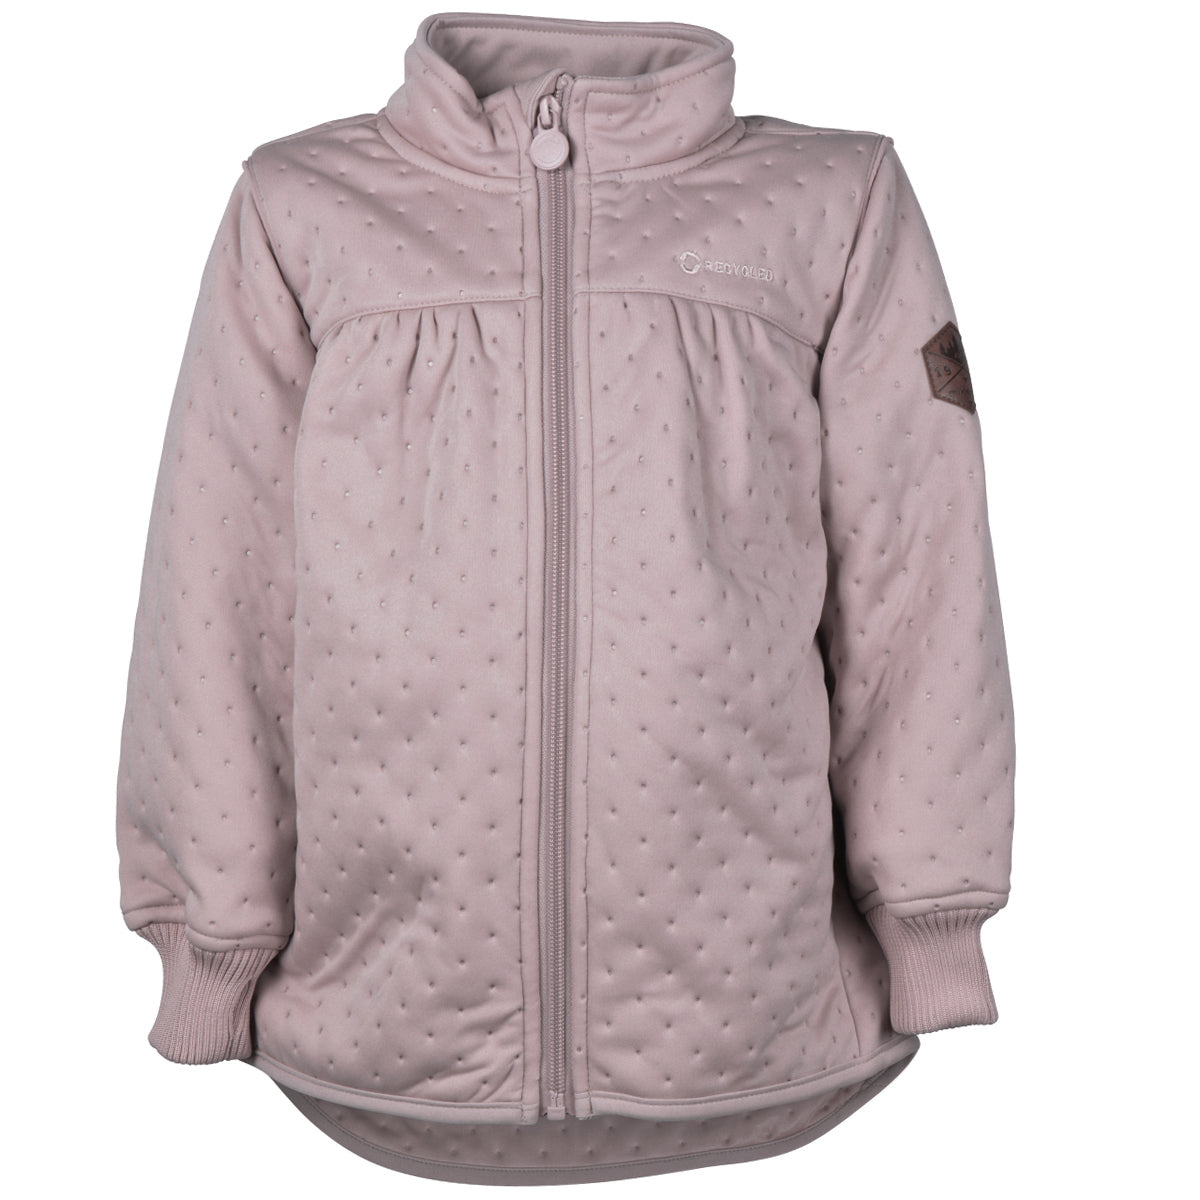 Mikk-Line - Soft Thermo Girl Jacket, Recycled - Adobe Rose